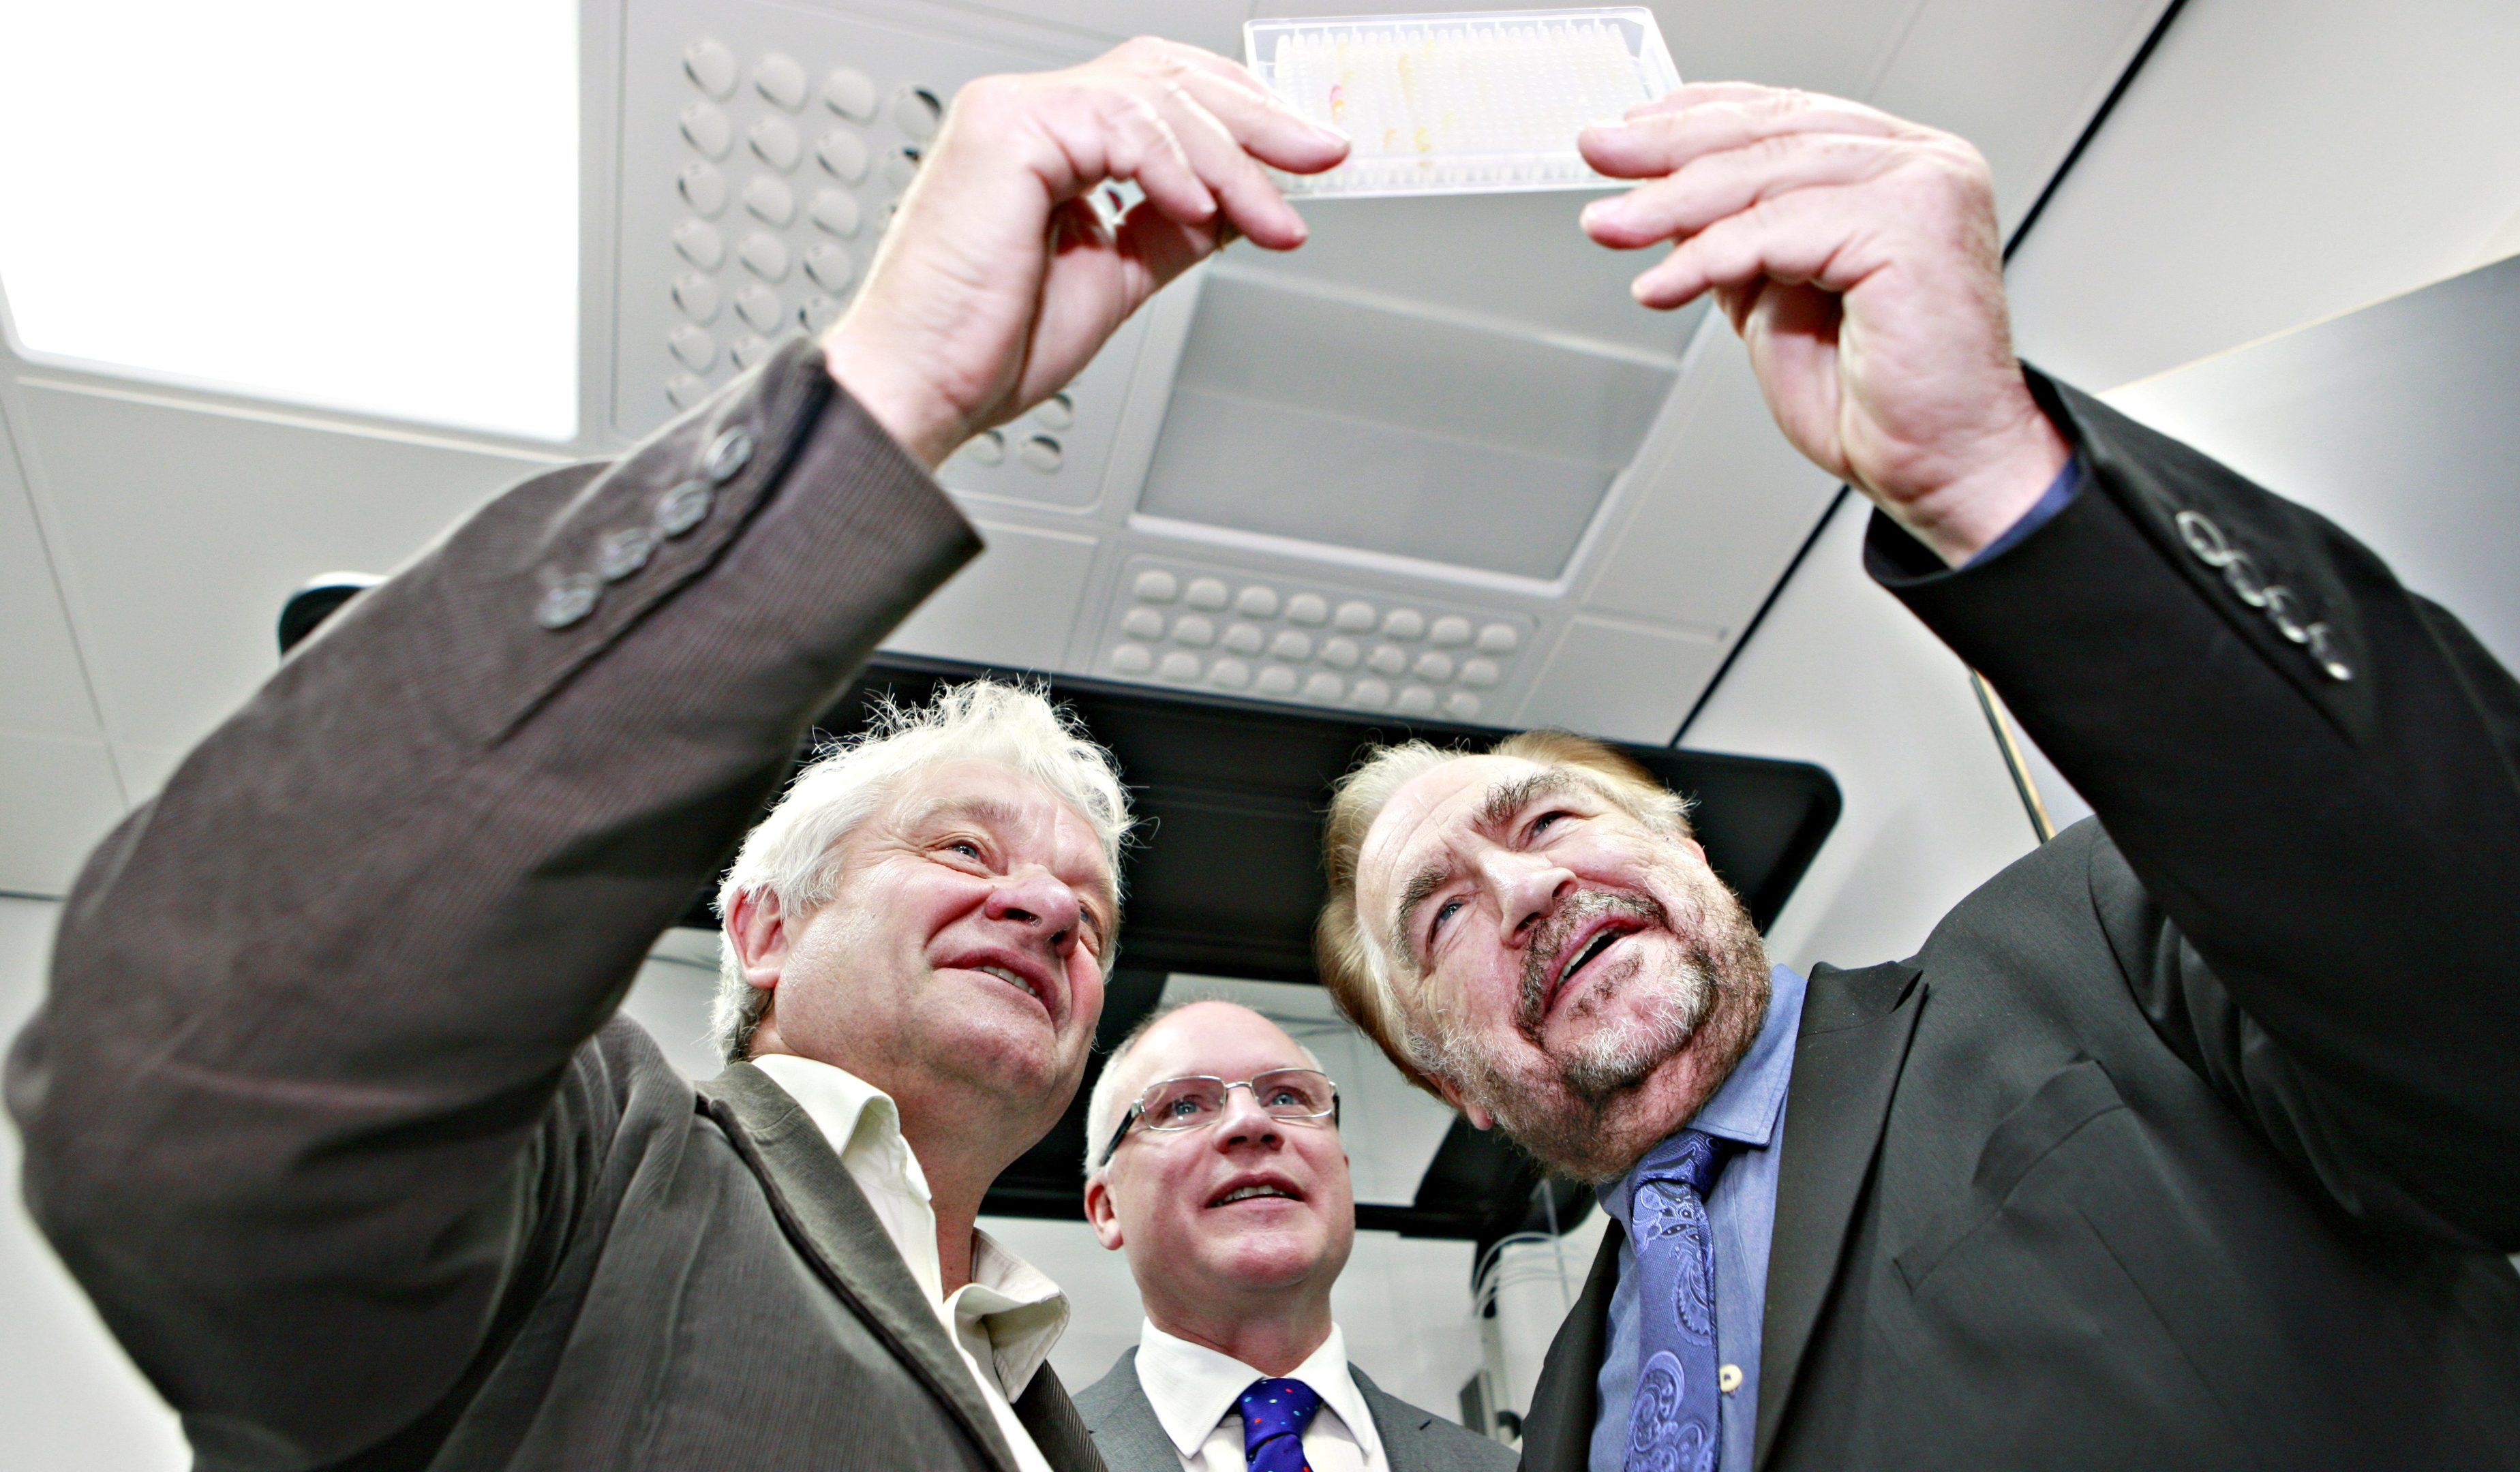 Sir Paul Nurse (left) on a visit to Dundee University in 2014, where he met Professor Mike Ferguson and then rector Brian Cox.